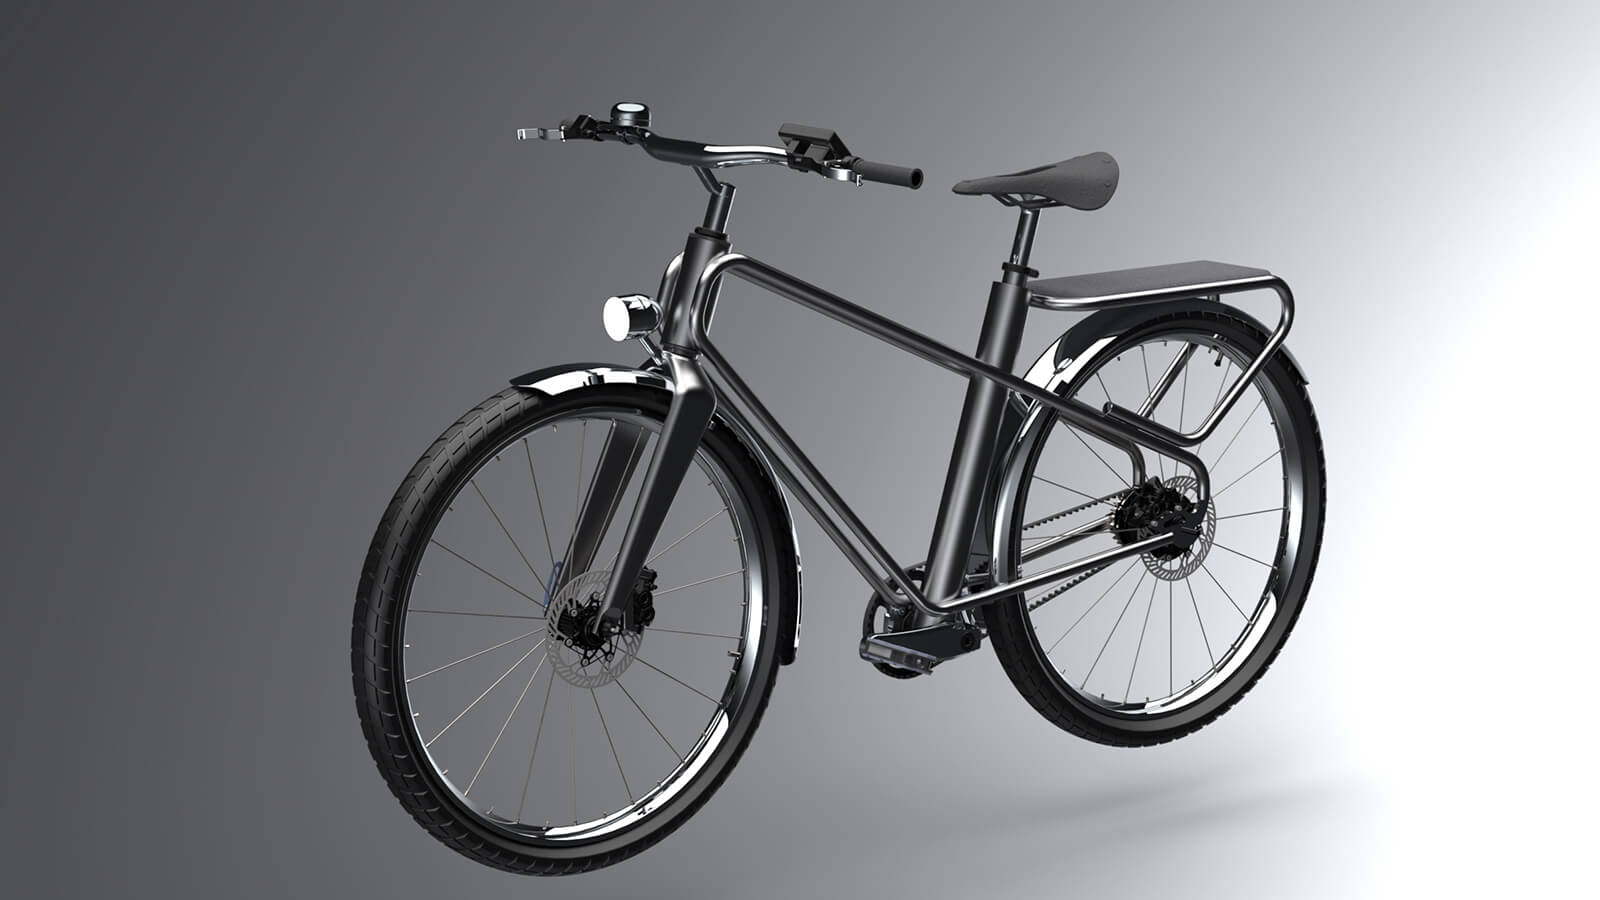 My new concept of an inexpensive city e-bike looks like a regular bike